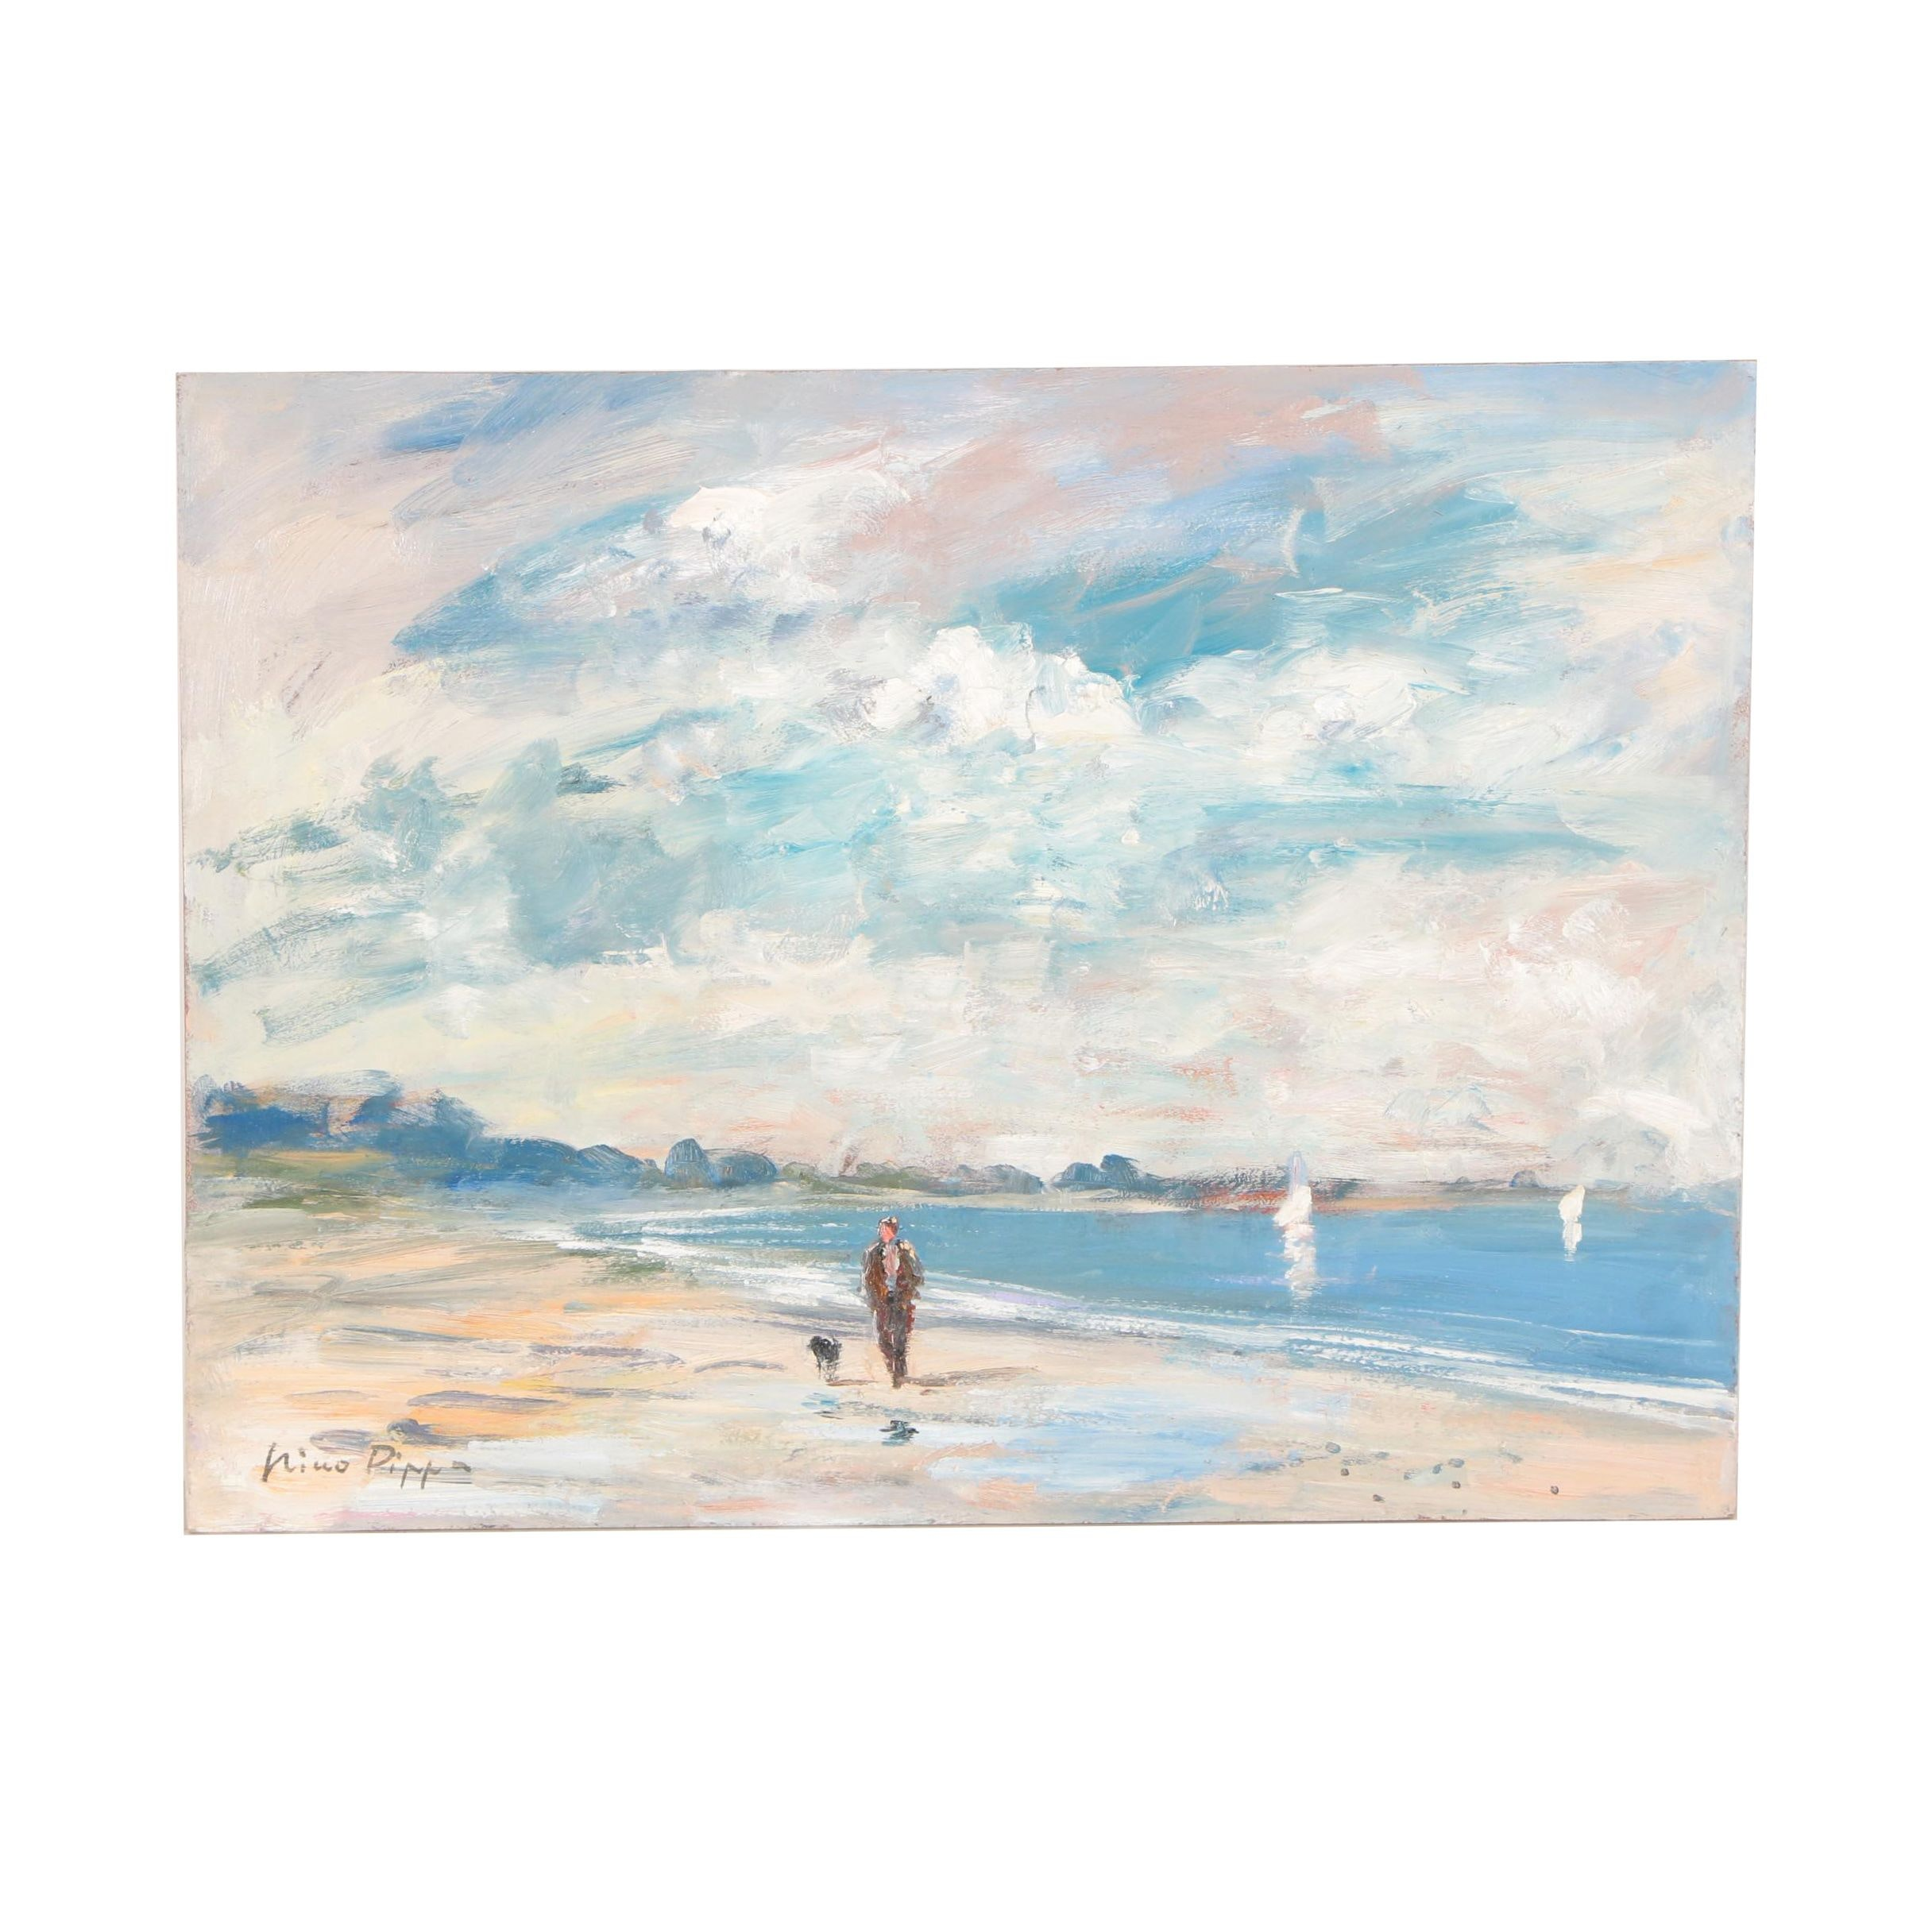 "Nino Pippa Oil Painting ""South Carolina - Best Friends Walk By the Seaside"""